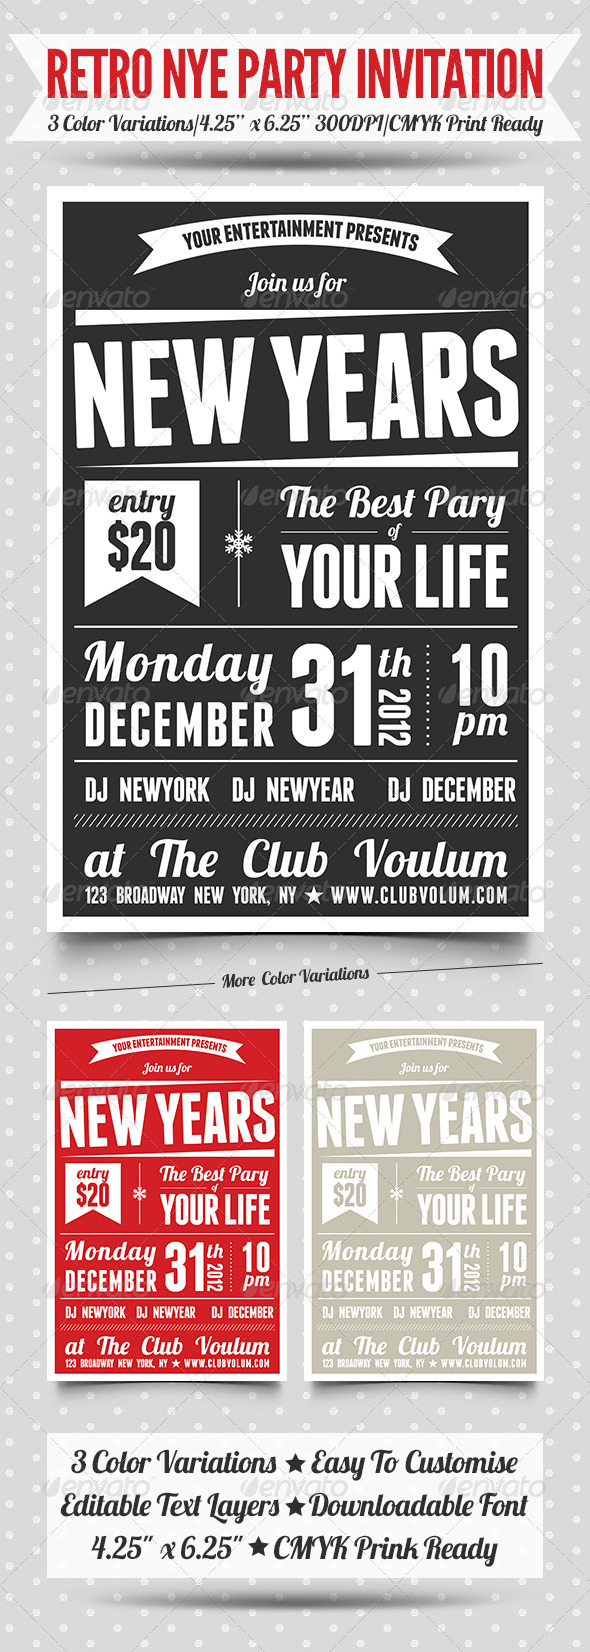 2013 Retro New Years Eve Party Invitation  - Events Flyers